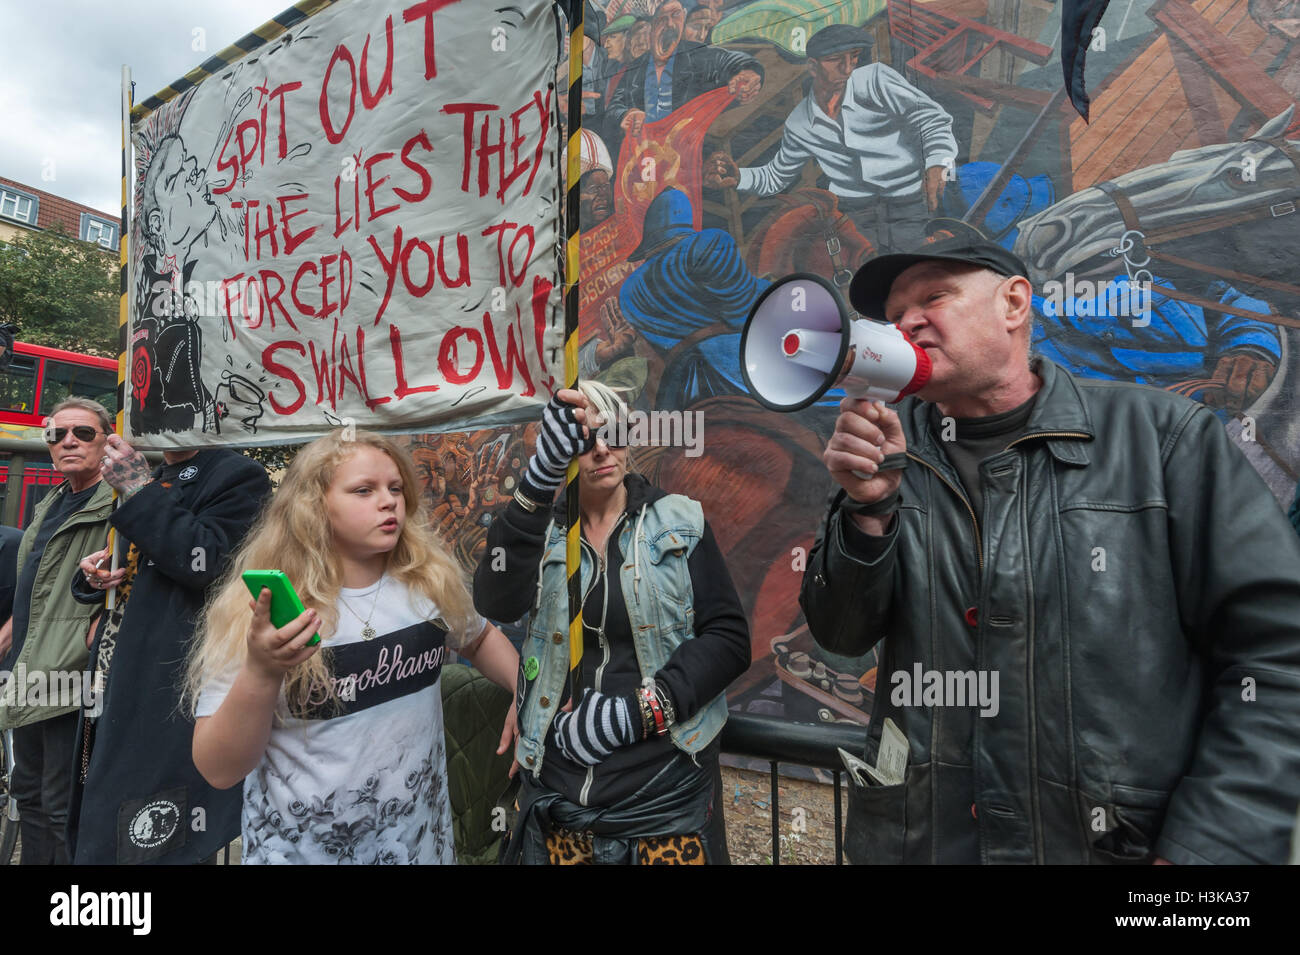 London, UK. 9th October 2016. Anarchist and local resident Martin Wright speaks at the Class War rally in front - Stock Image